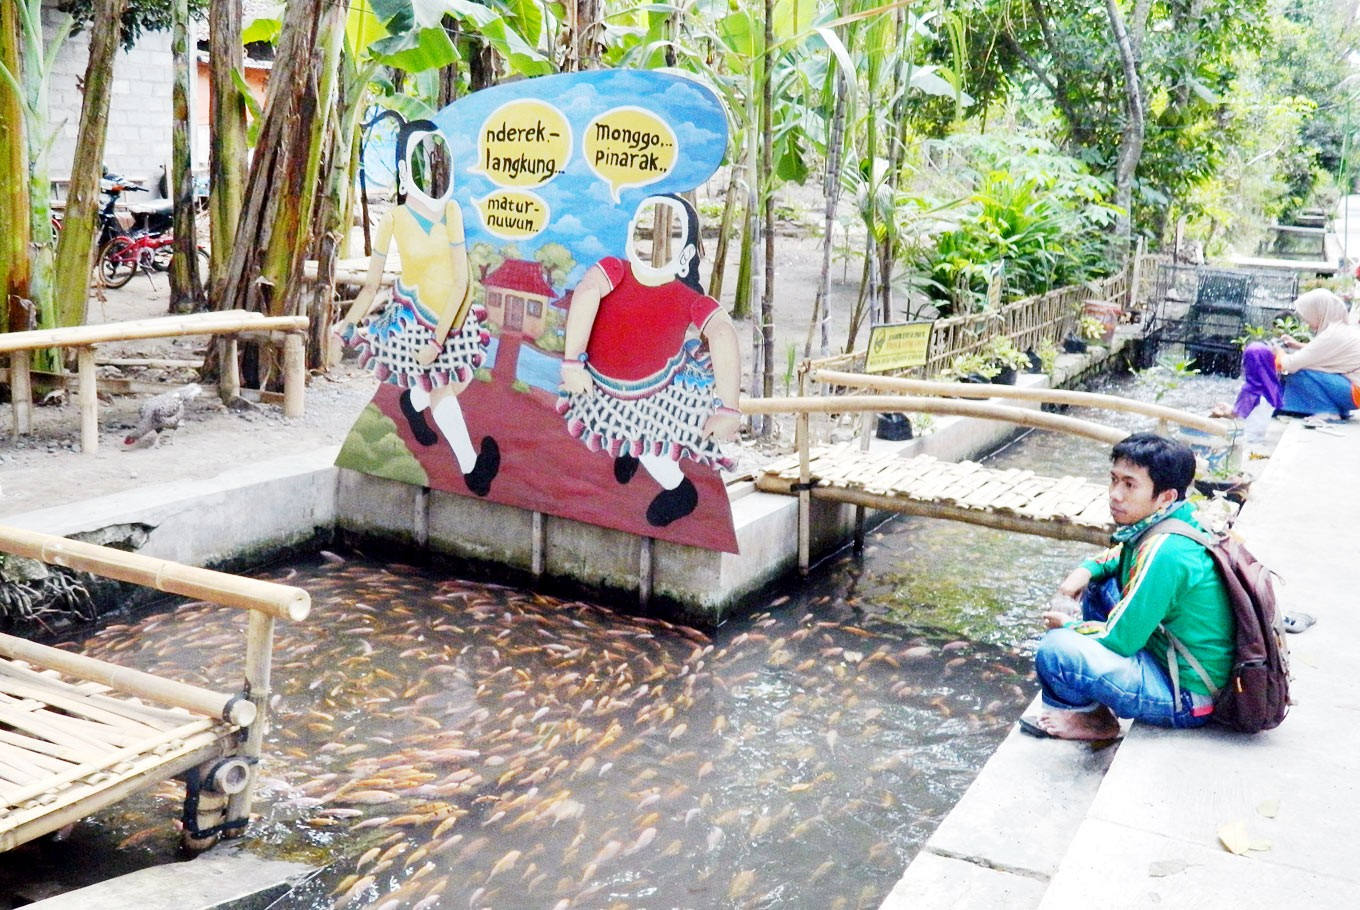 Villages drive waste management but waste persists in urban Yogya